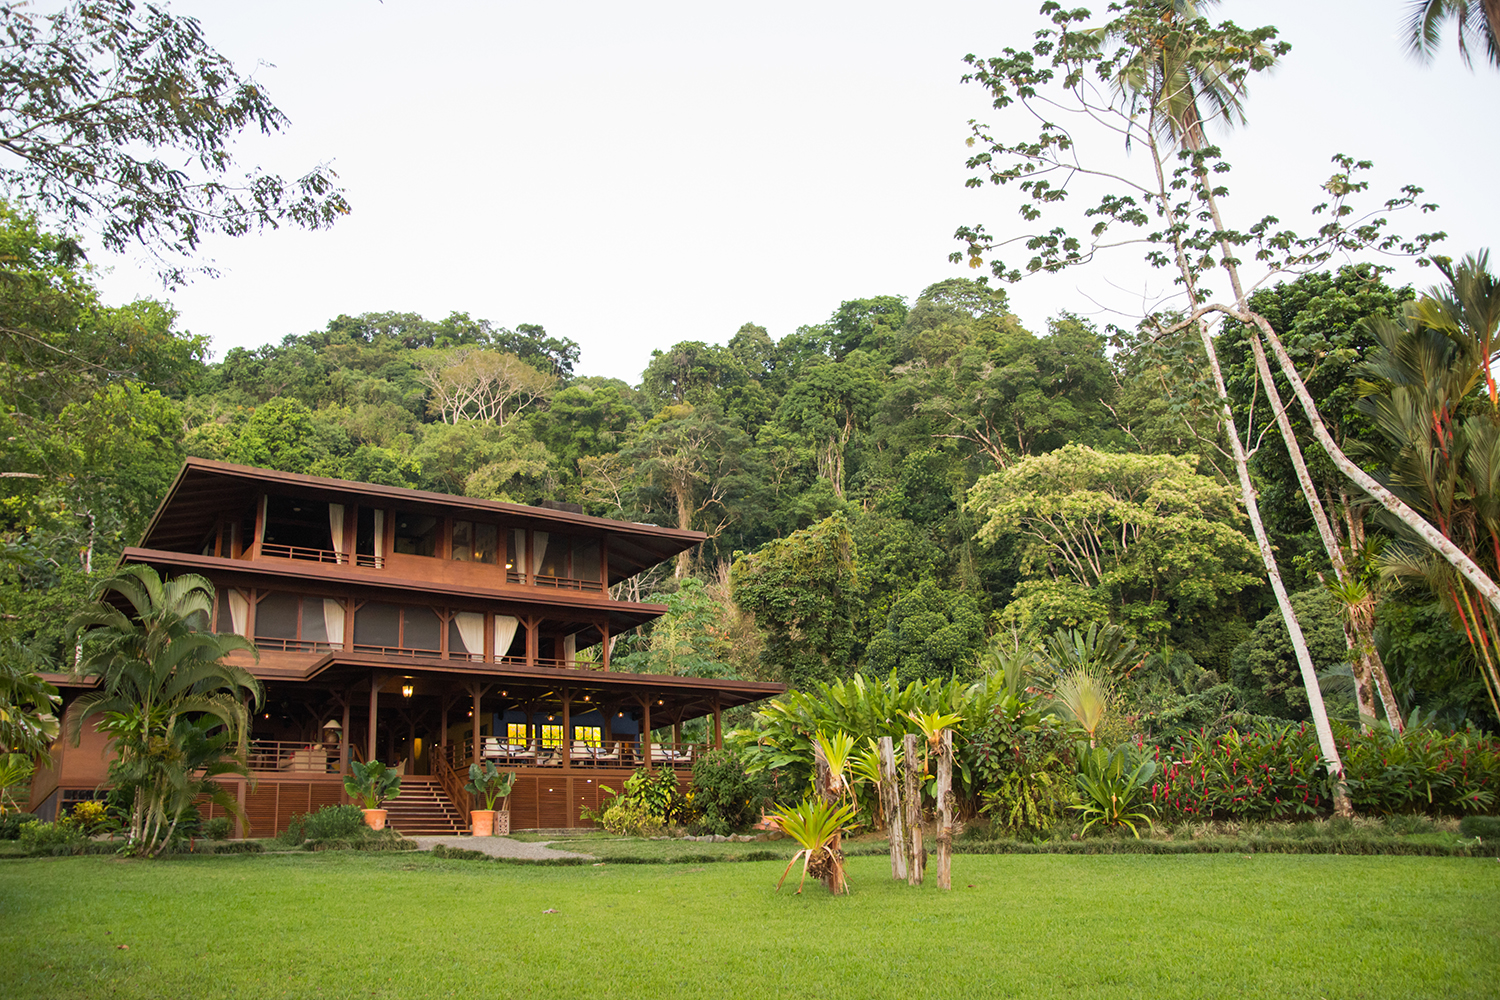 Playa Cativo Lodge is a luxury all-inclusive beachfront eco-lodge in the remote rainforests of Costa Rica.